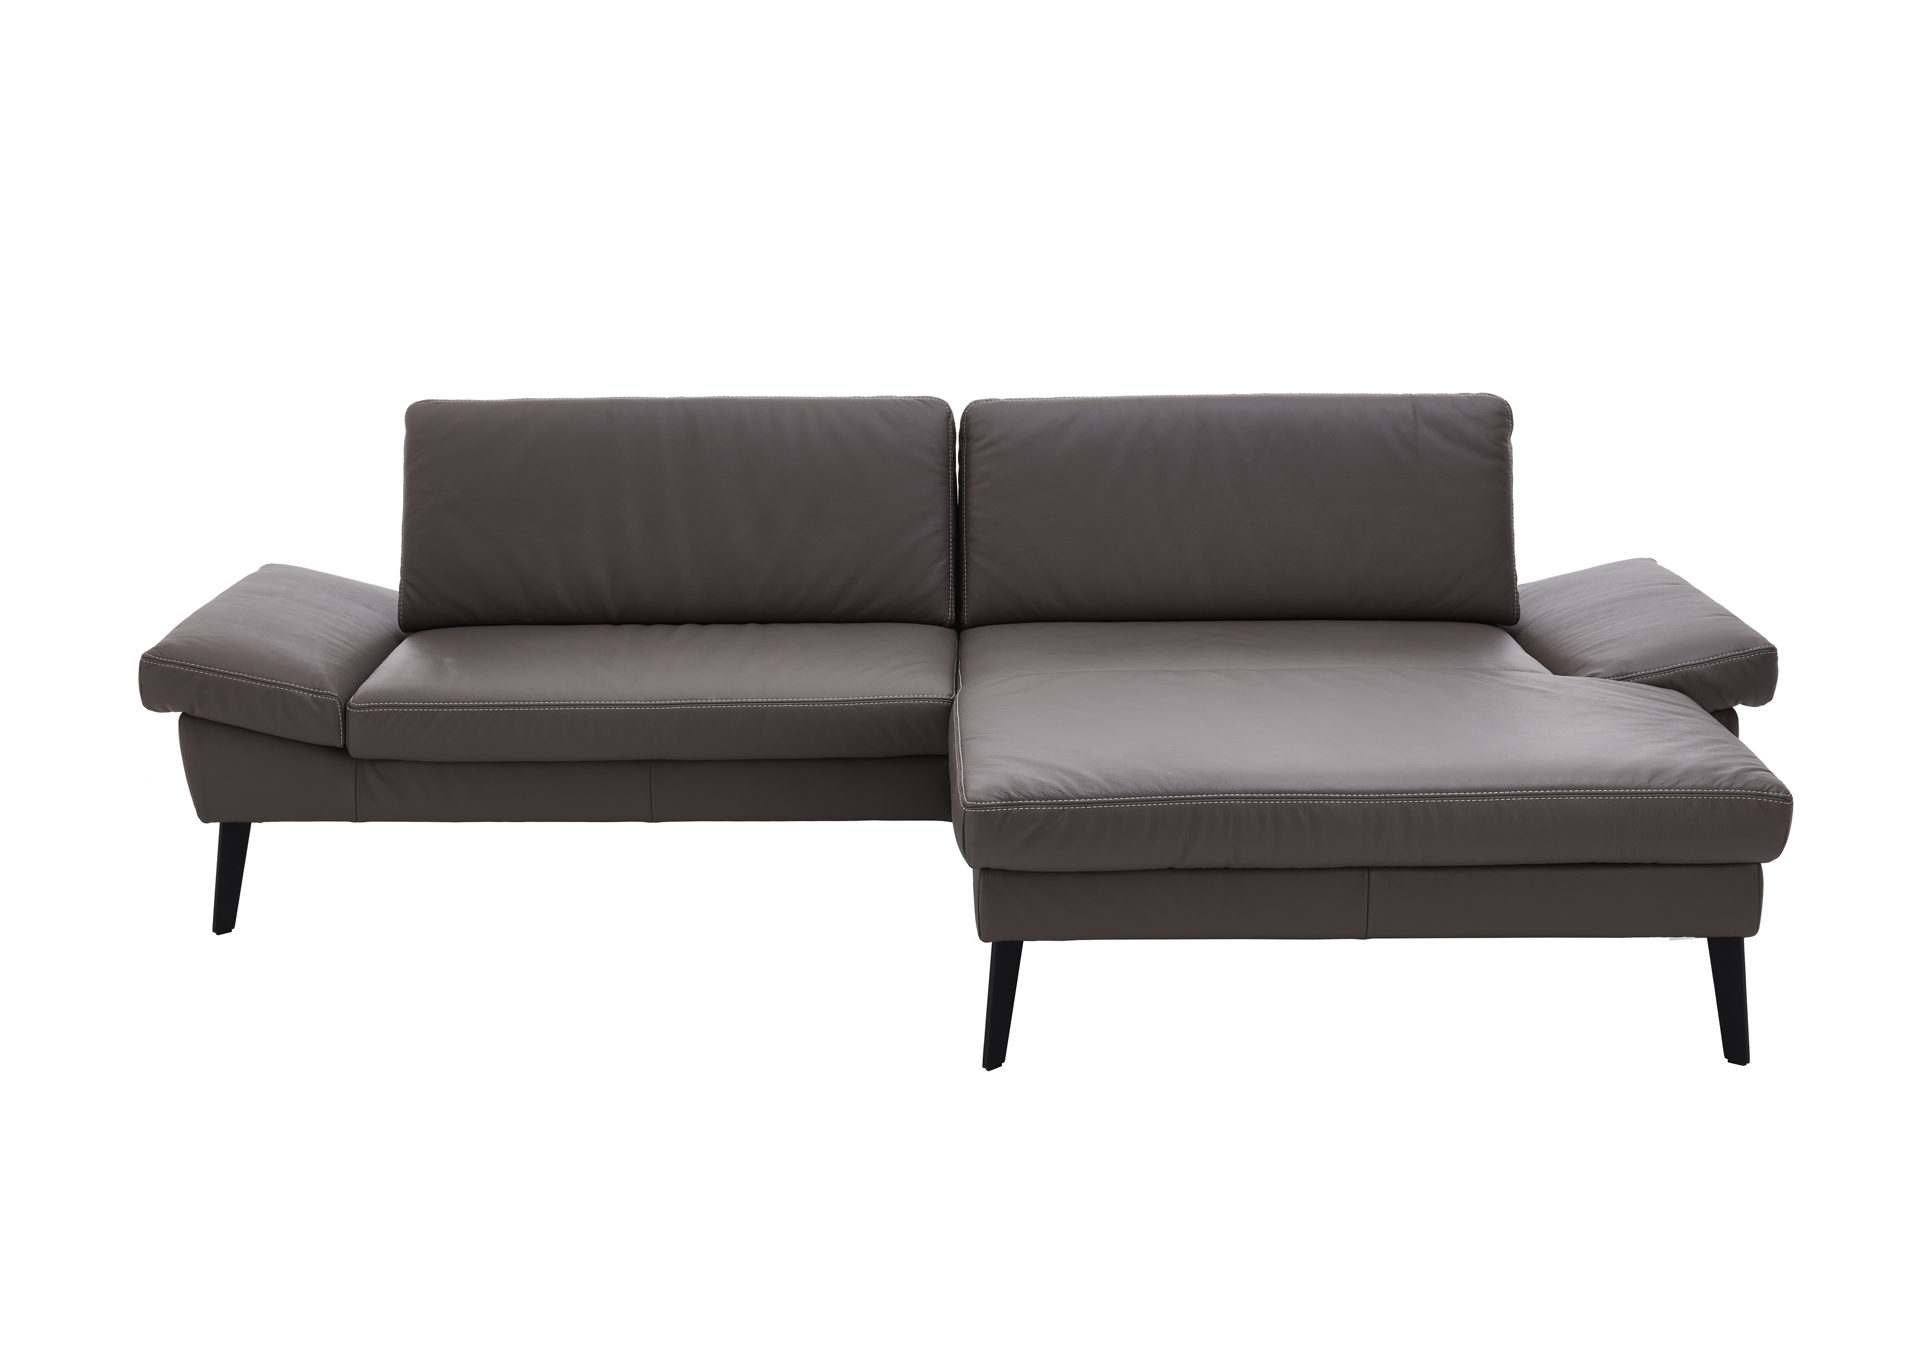 Möbel Bernskötter Mülheim Möbel A Z Sofas Couches Interliving